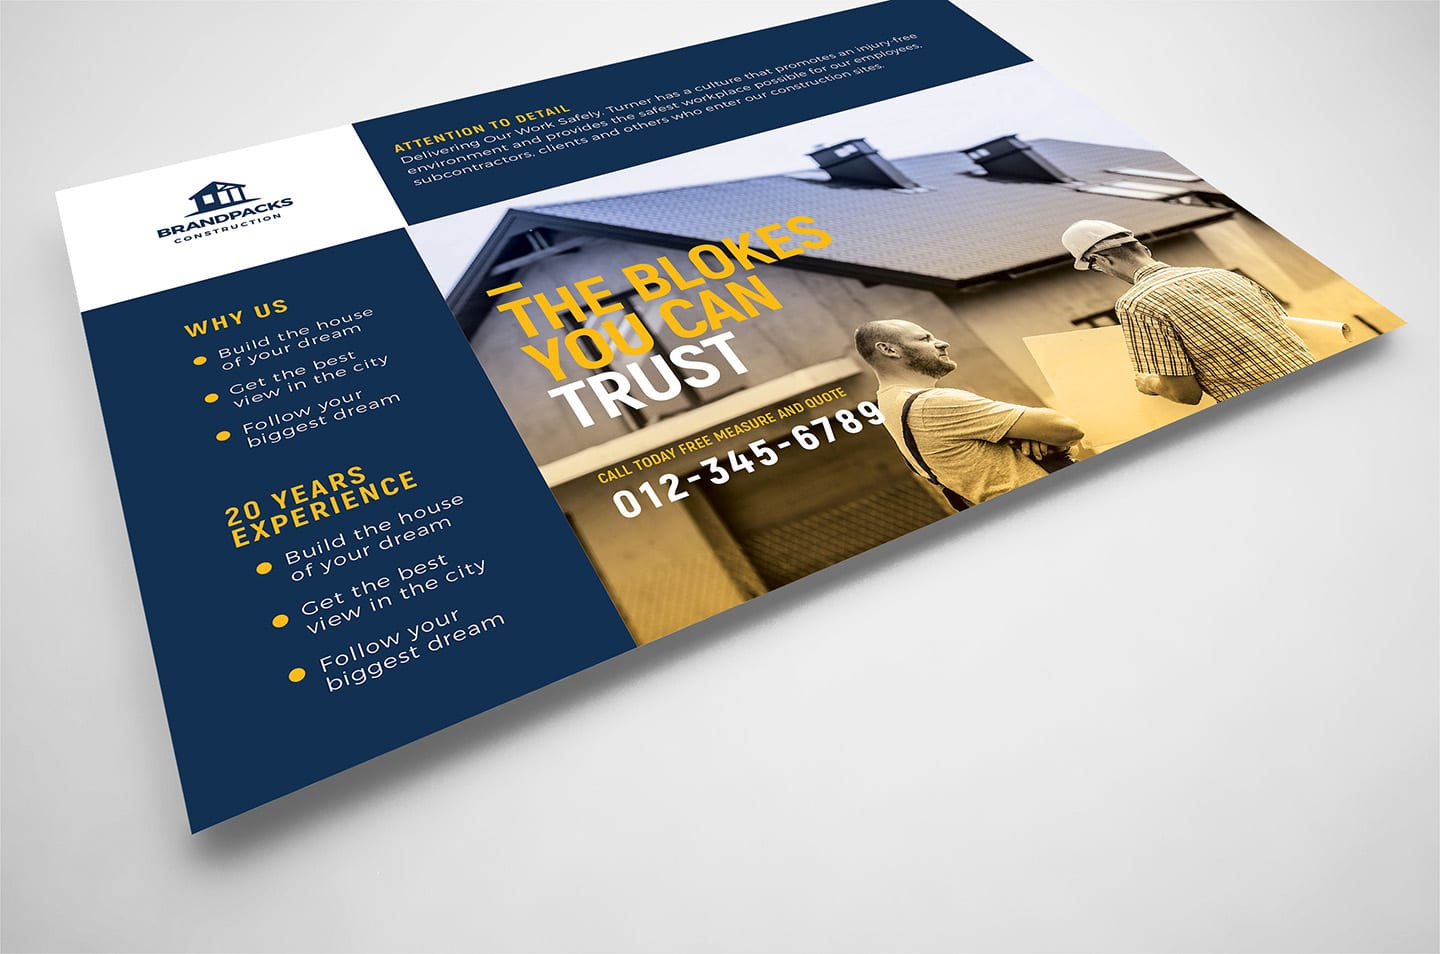 008 Phenomenal Construction Busines Card Template Highest Clarity  Templates Visiting Company Format Design PsdFull